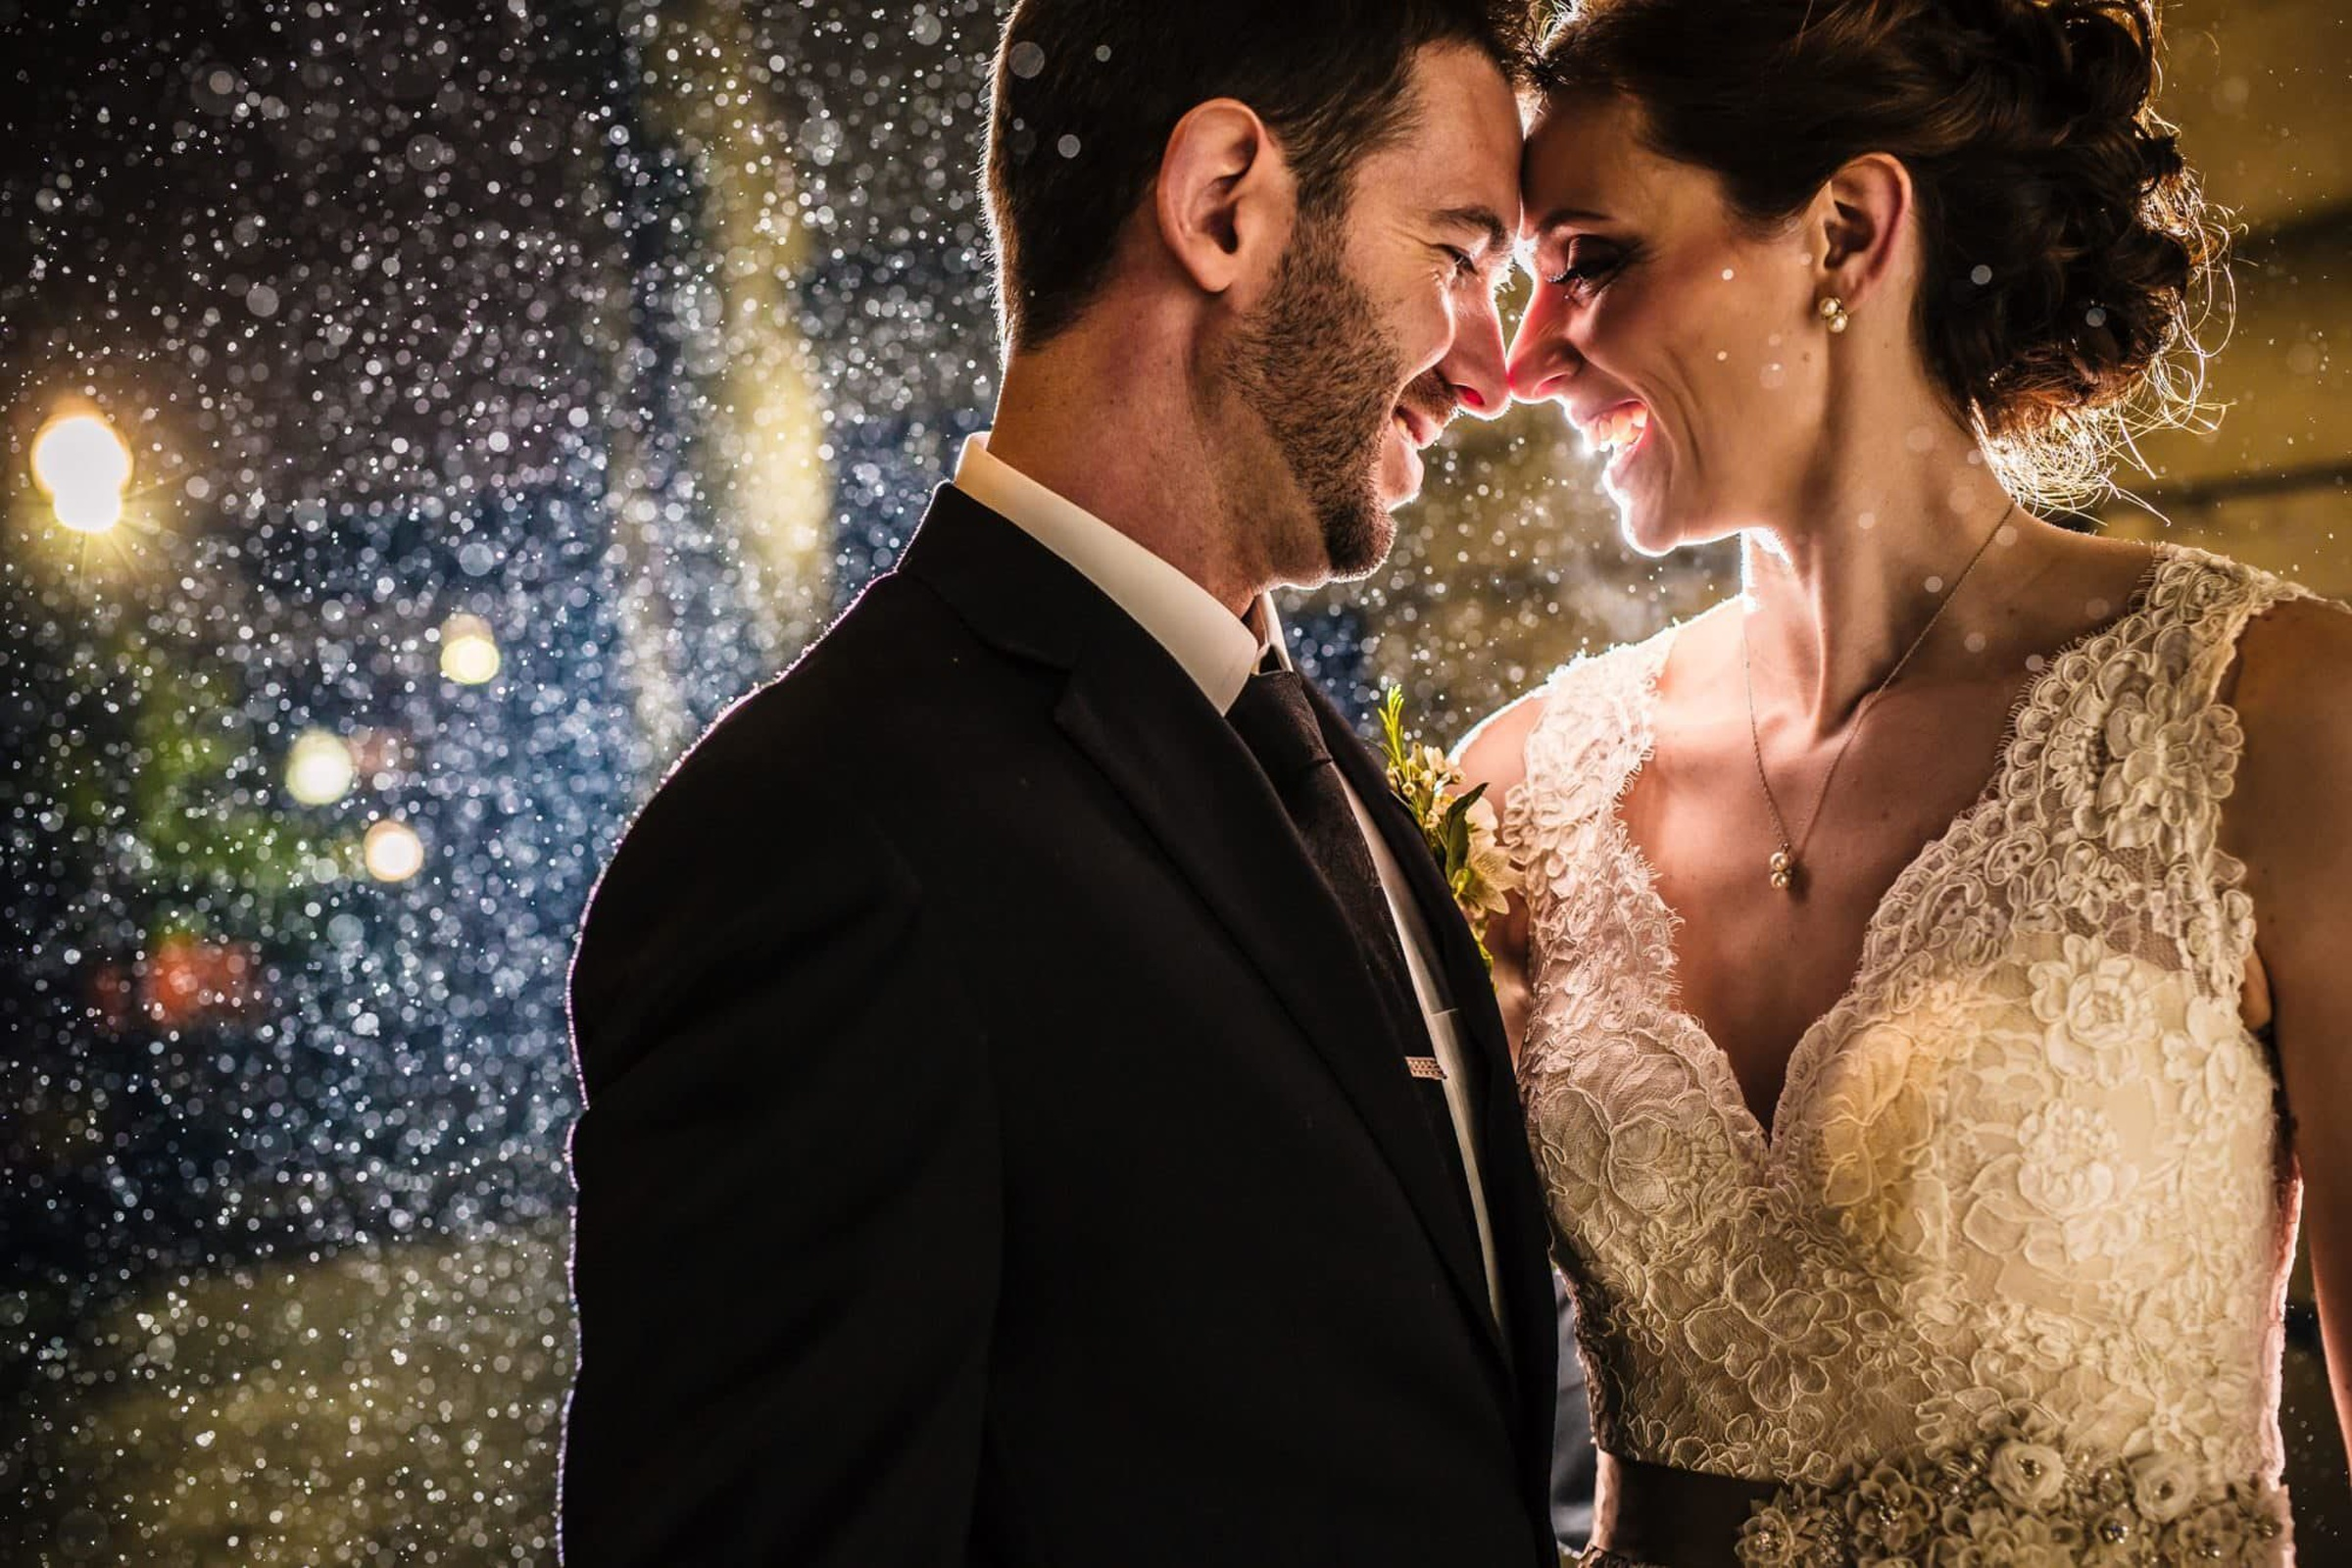 Bride and groom in the rain - photo by Photography by Brea